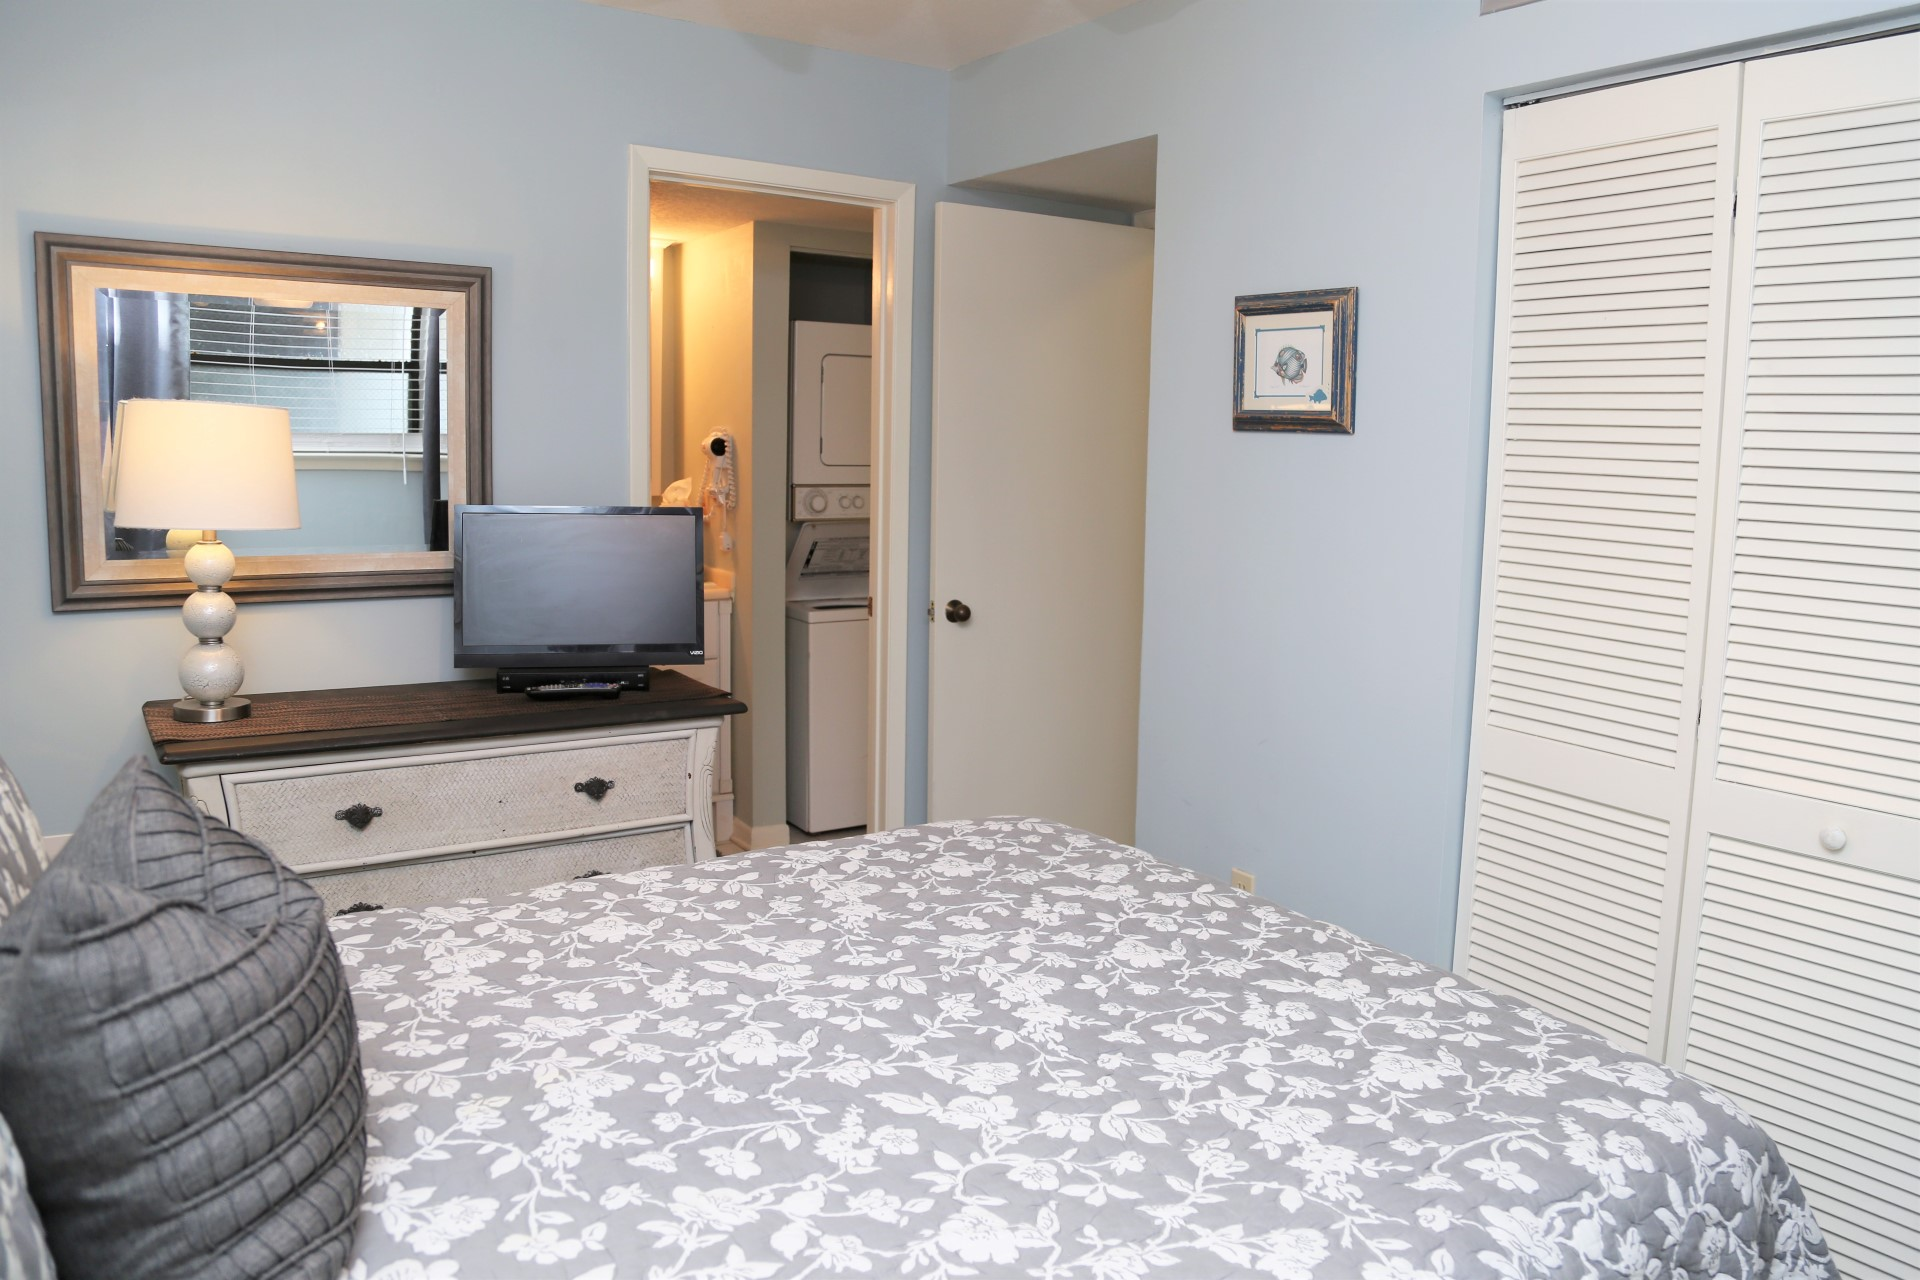 The master bedroom with dresser and closet for storage.